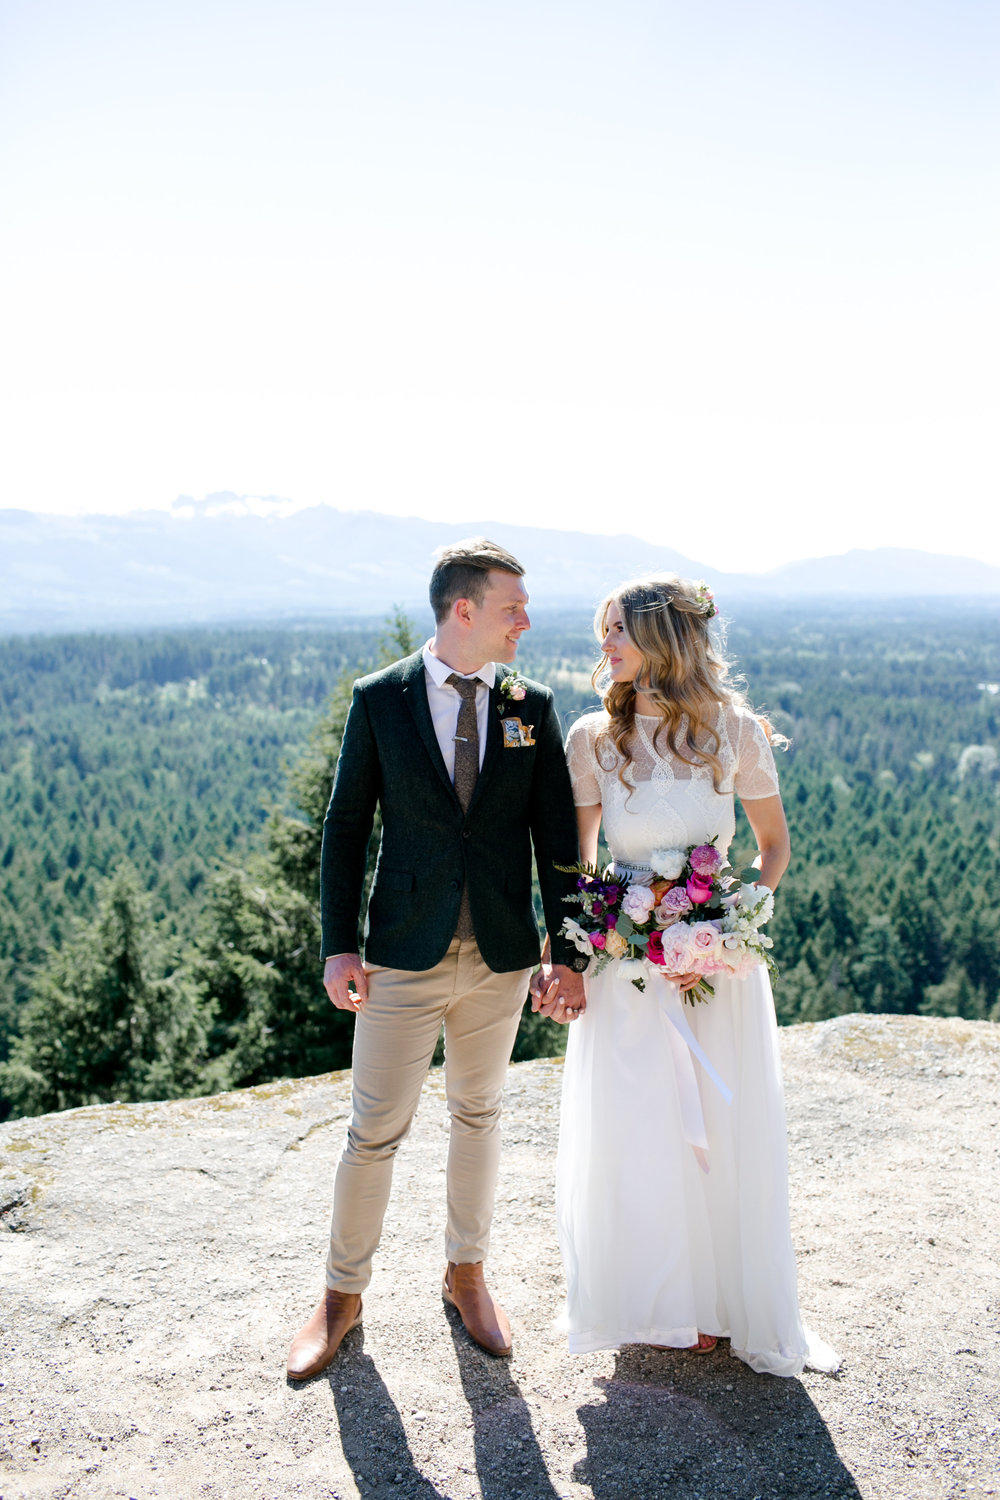 M + M - Romantic Boho Wedding in Coombs, Vancouver Island